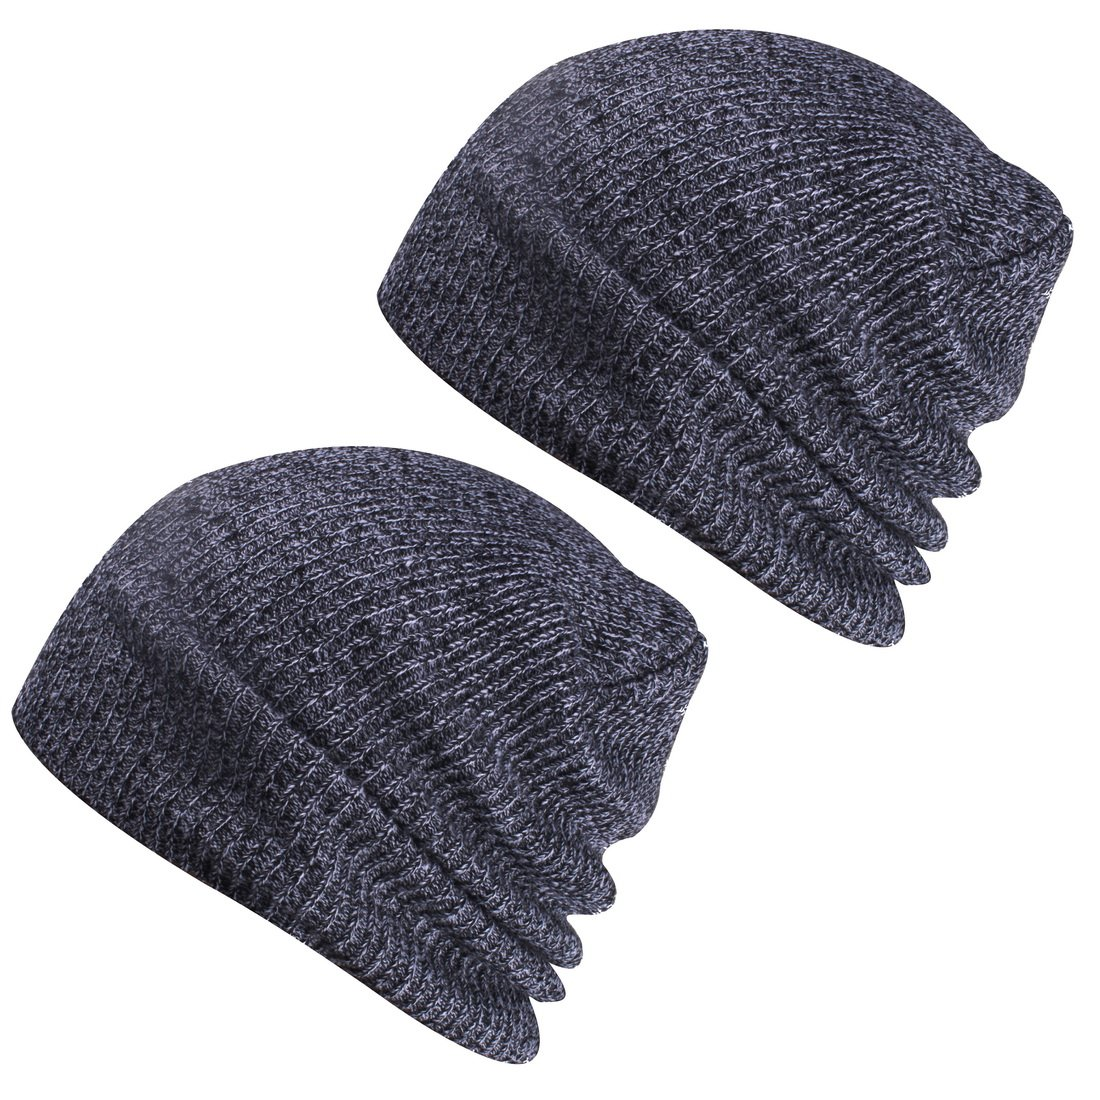 Paladoo Winter Hats Knit Beanie Caps Soft Warm Ski Hat (2pcs Dark Grey)